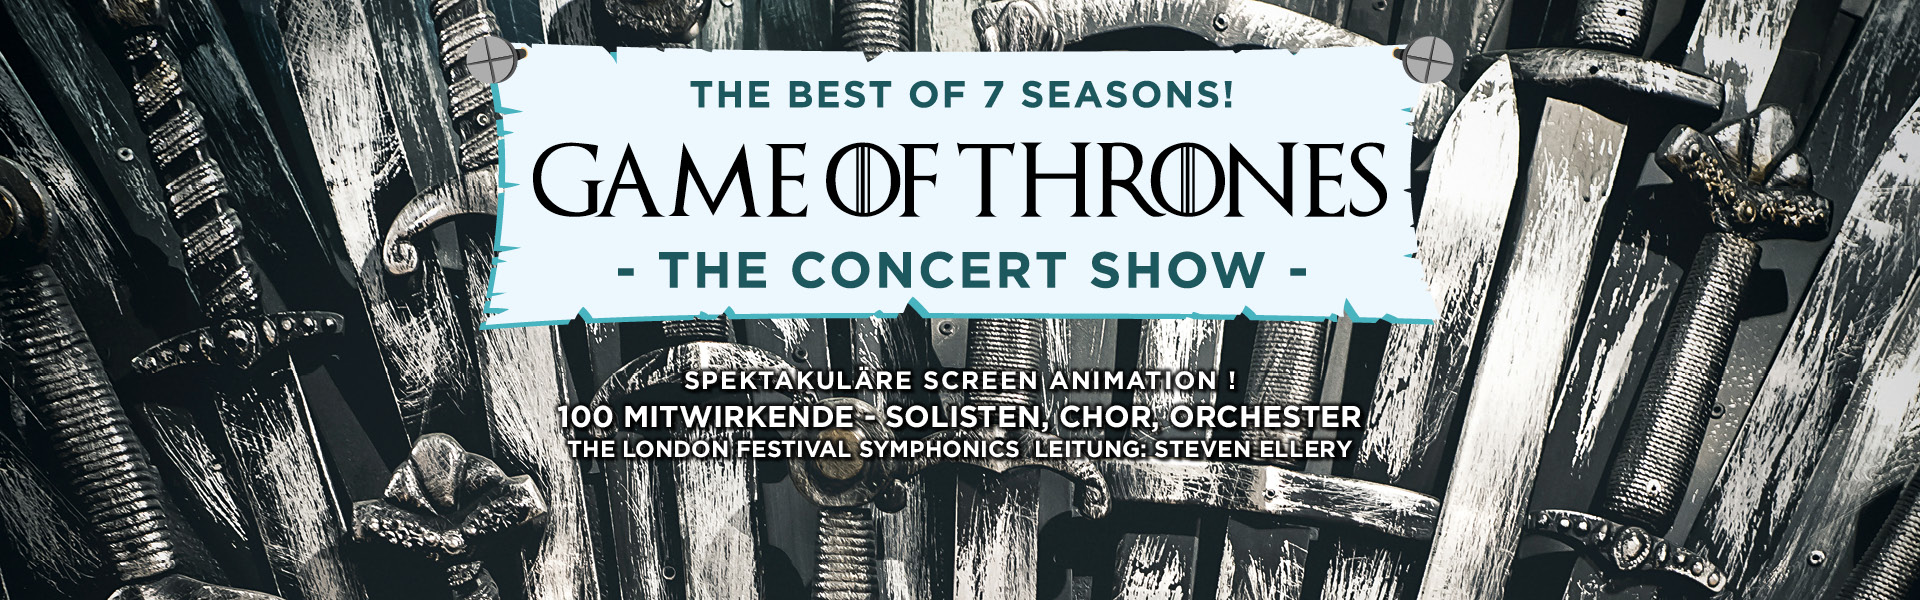 Game of Thrones -The Concert Show!